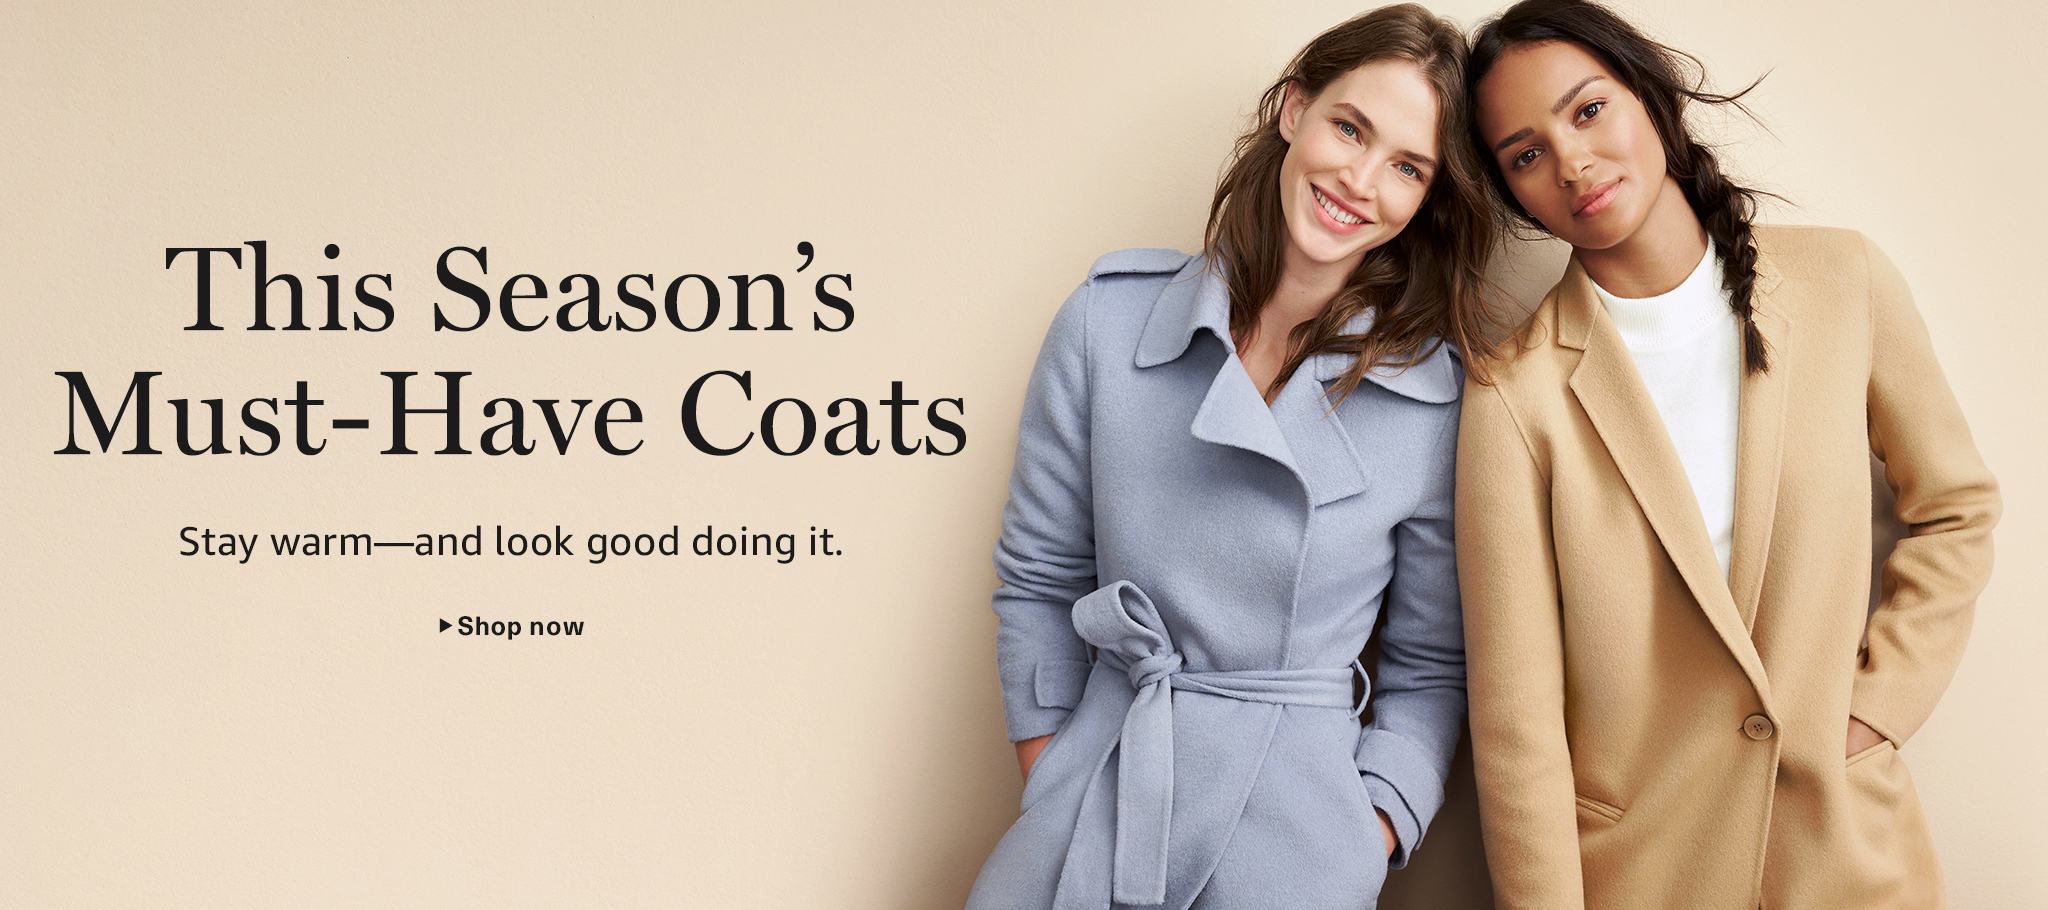 The Must-Have Coats